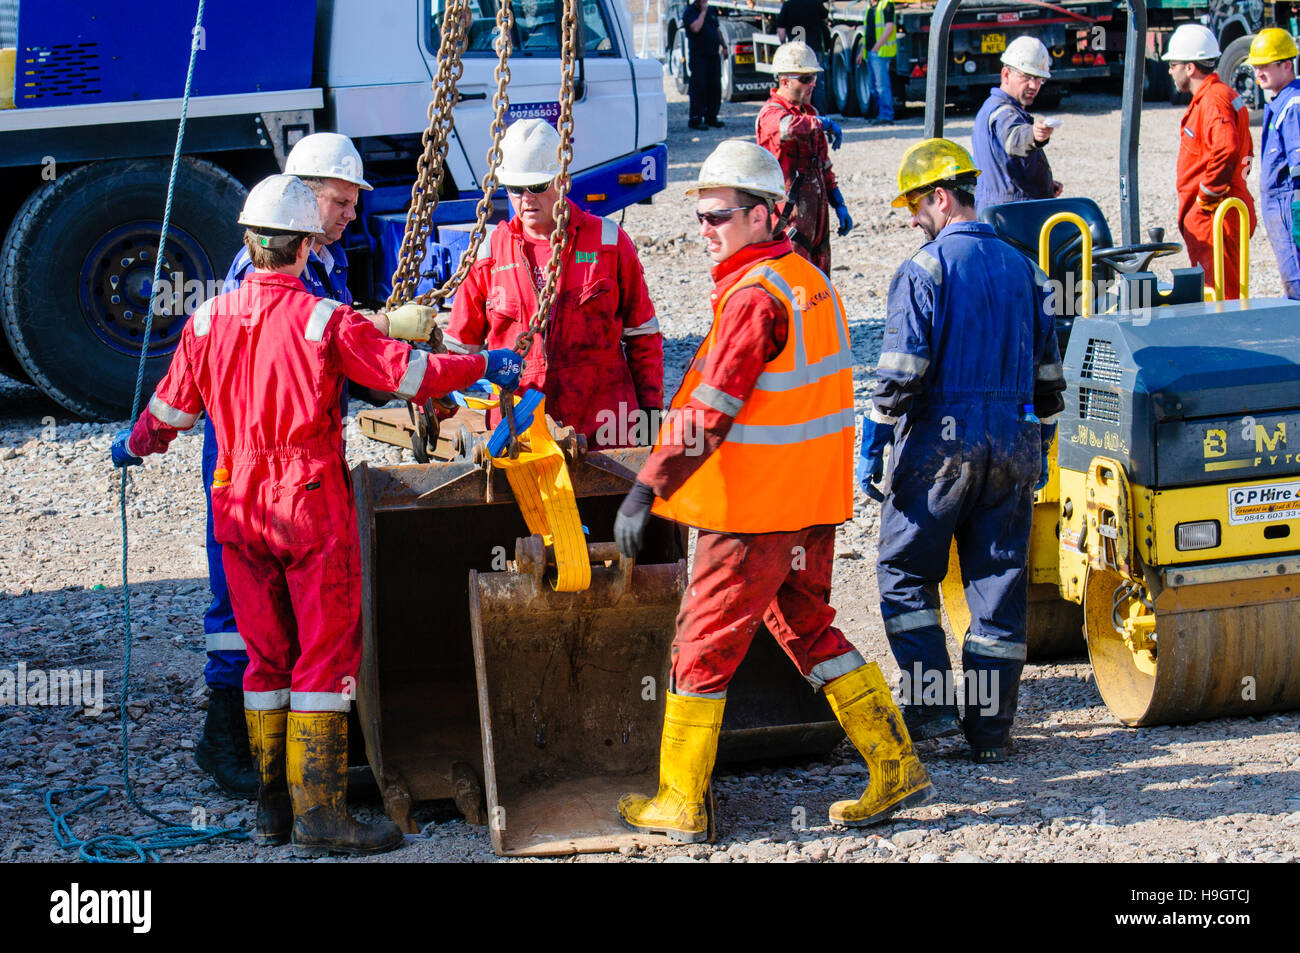 Construction workers prepare a crane hook to lift backhoe digger buckets.at an exploratory oil well. - Stock Image